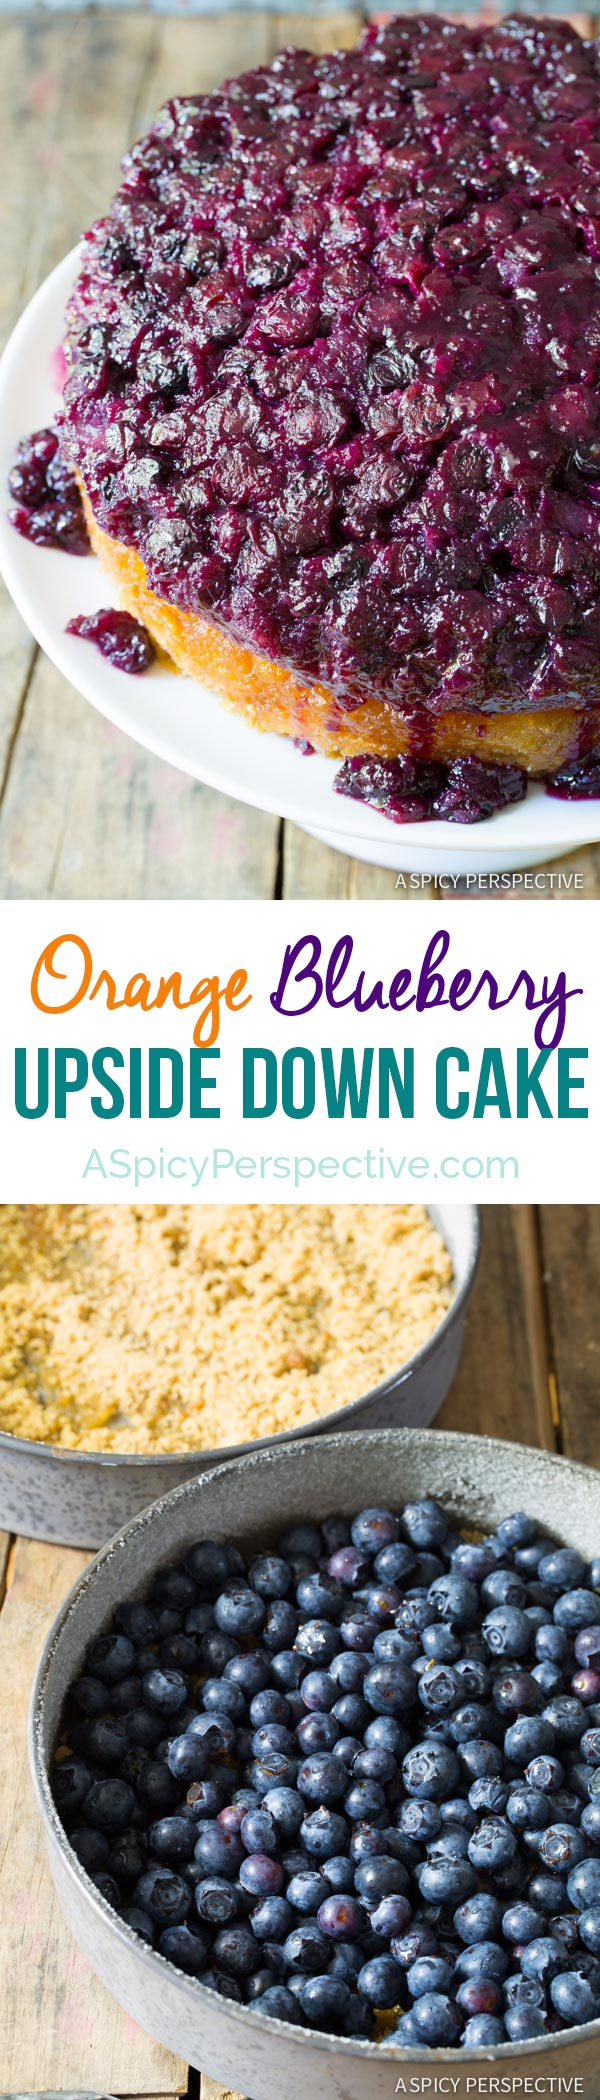 Moist and Fruity Orange Blueberry Upside Down Cake on ASpicyPerspective.com #cake